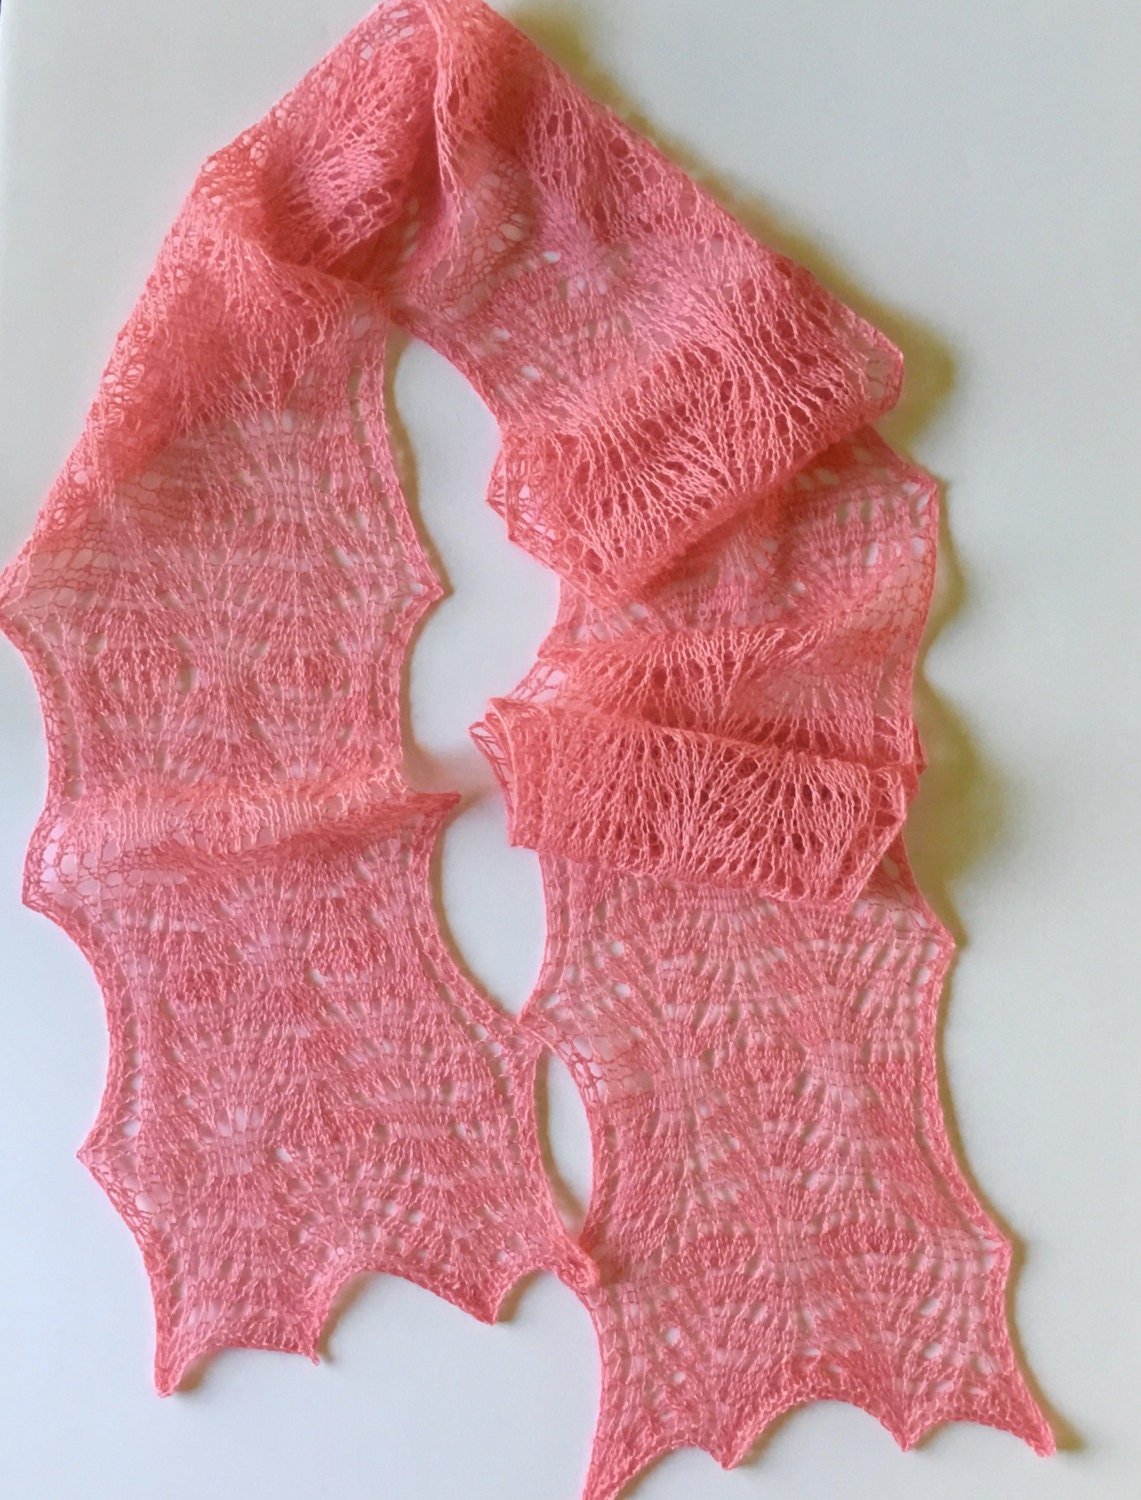 Knitting Summer Scarves : Summer knit scarf pink lace merino silk